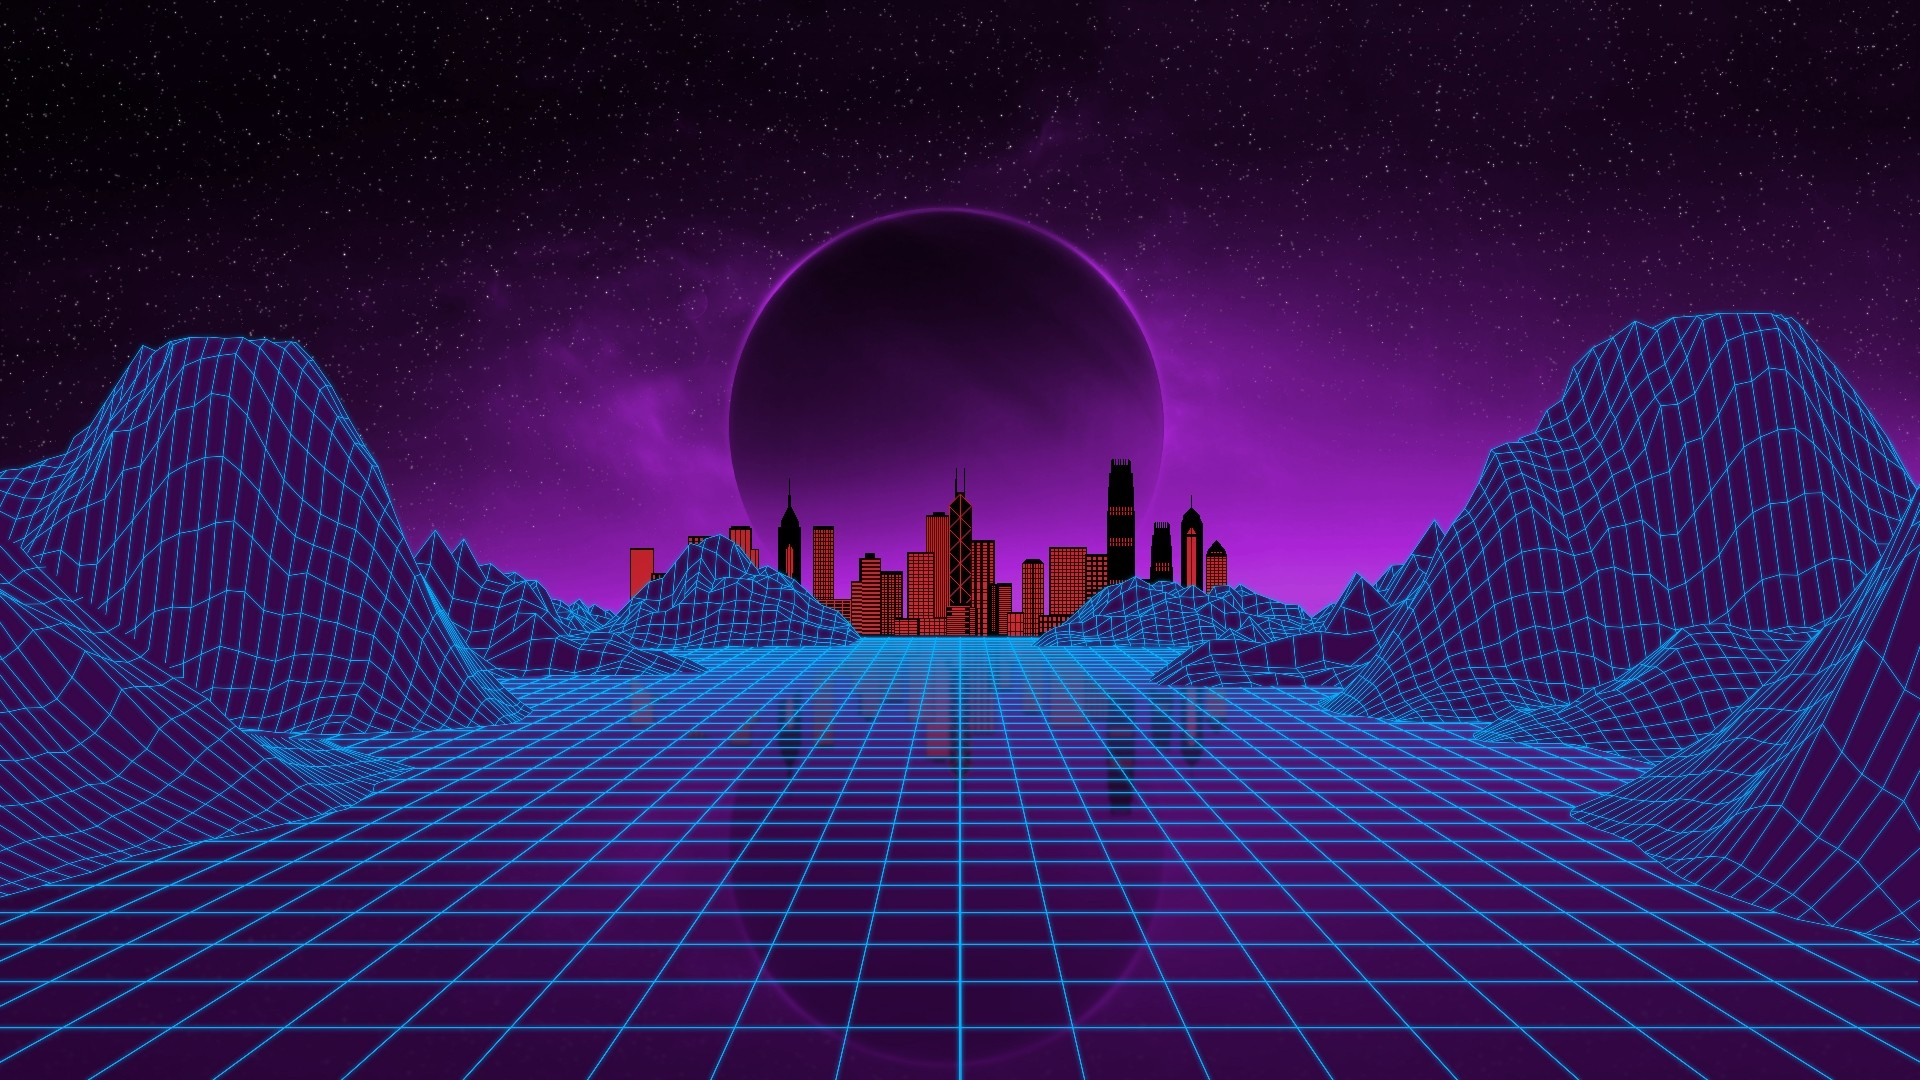 Neon Wallpapers: 80S Neon Wallpaper ·① Download Free Awesome High